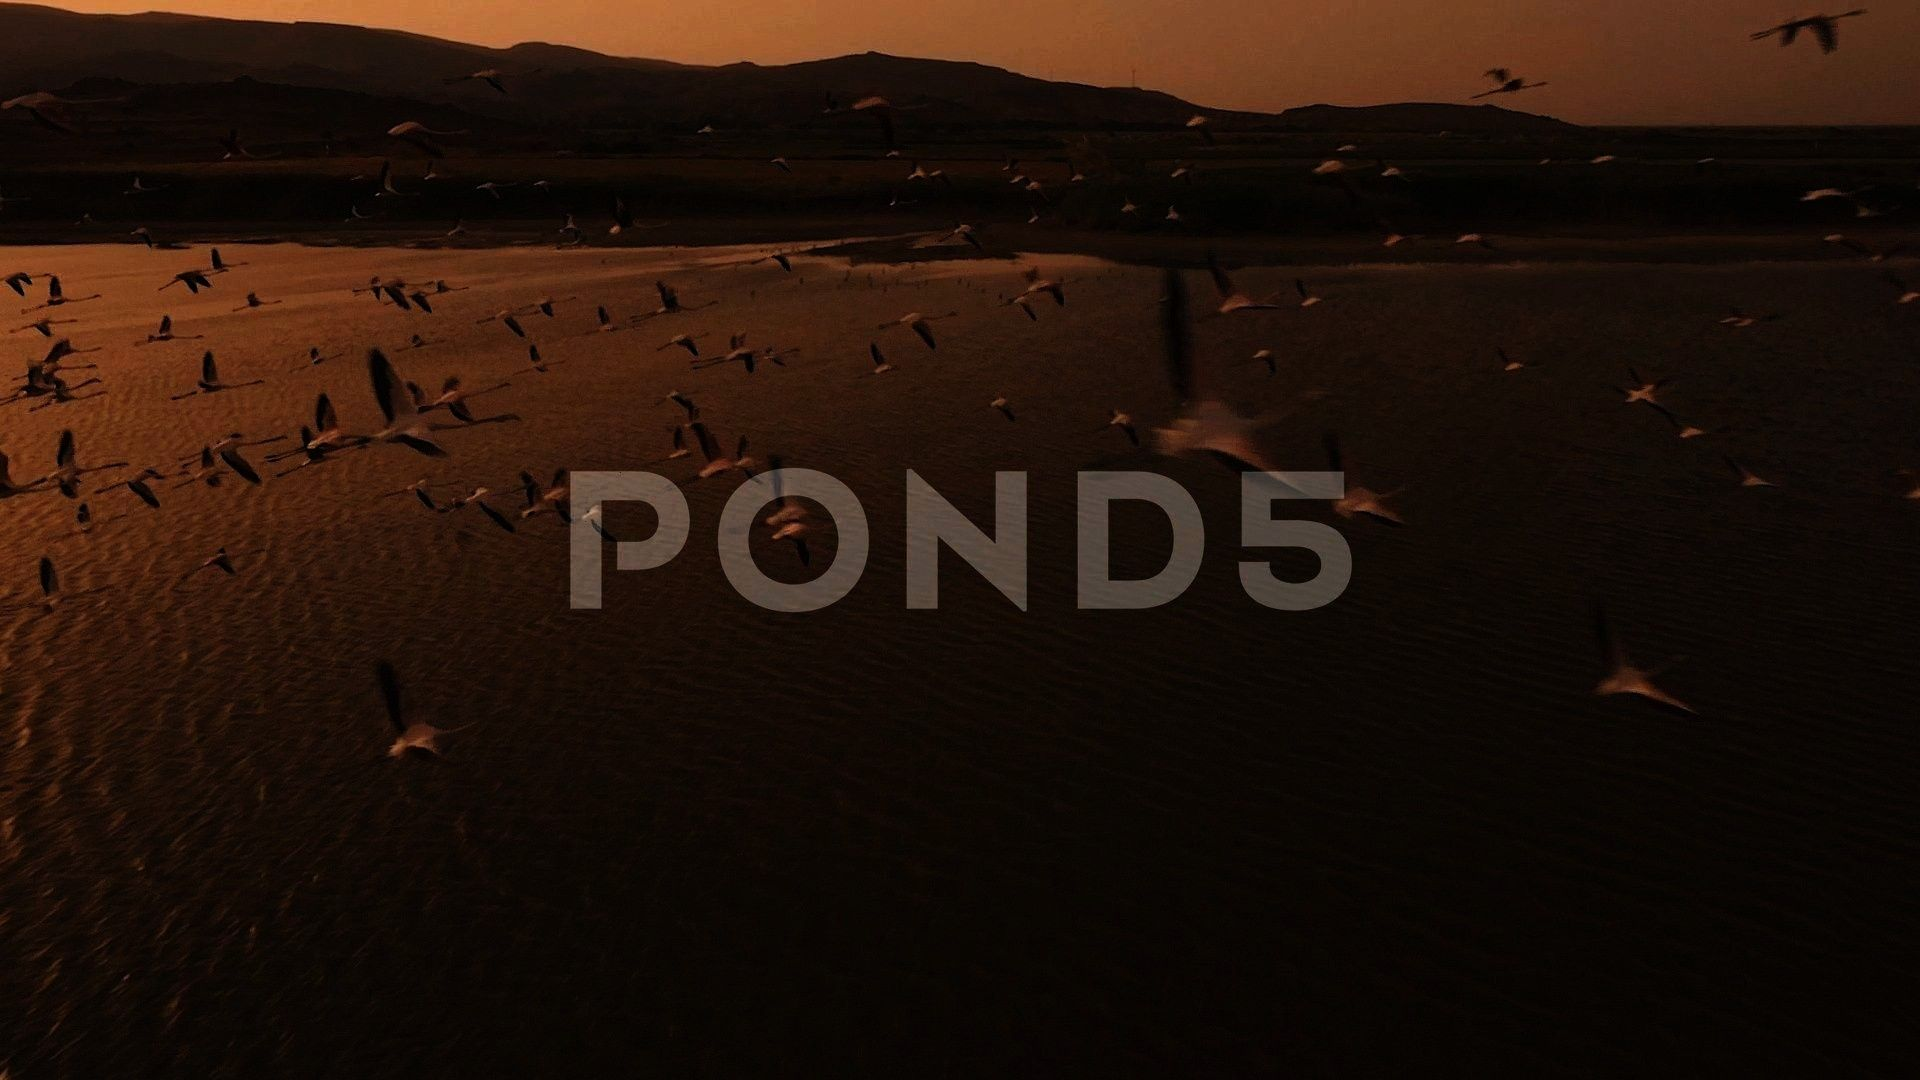 Drone Fly Through Stock Footage DroneSwarmFootageFlamingoFlamingo Swarm  Drone Fly Through Stock Footage DroneSwarmFootageFlamingo Graphic Design  Graphic Design Ideas  A...